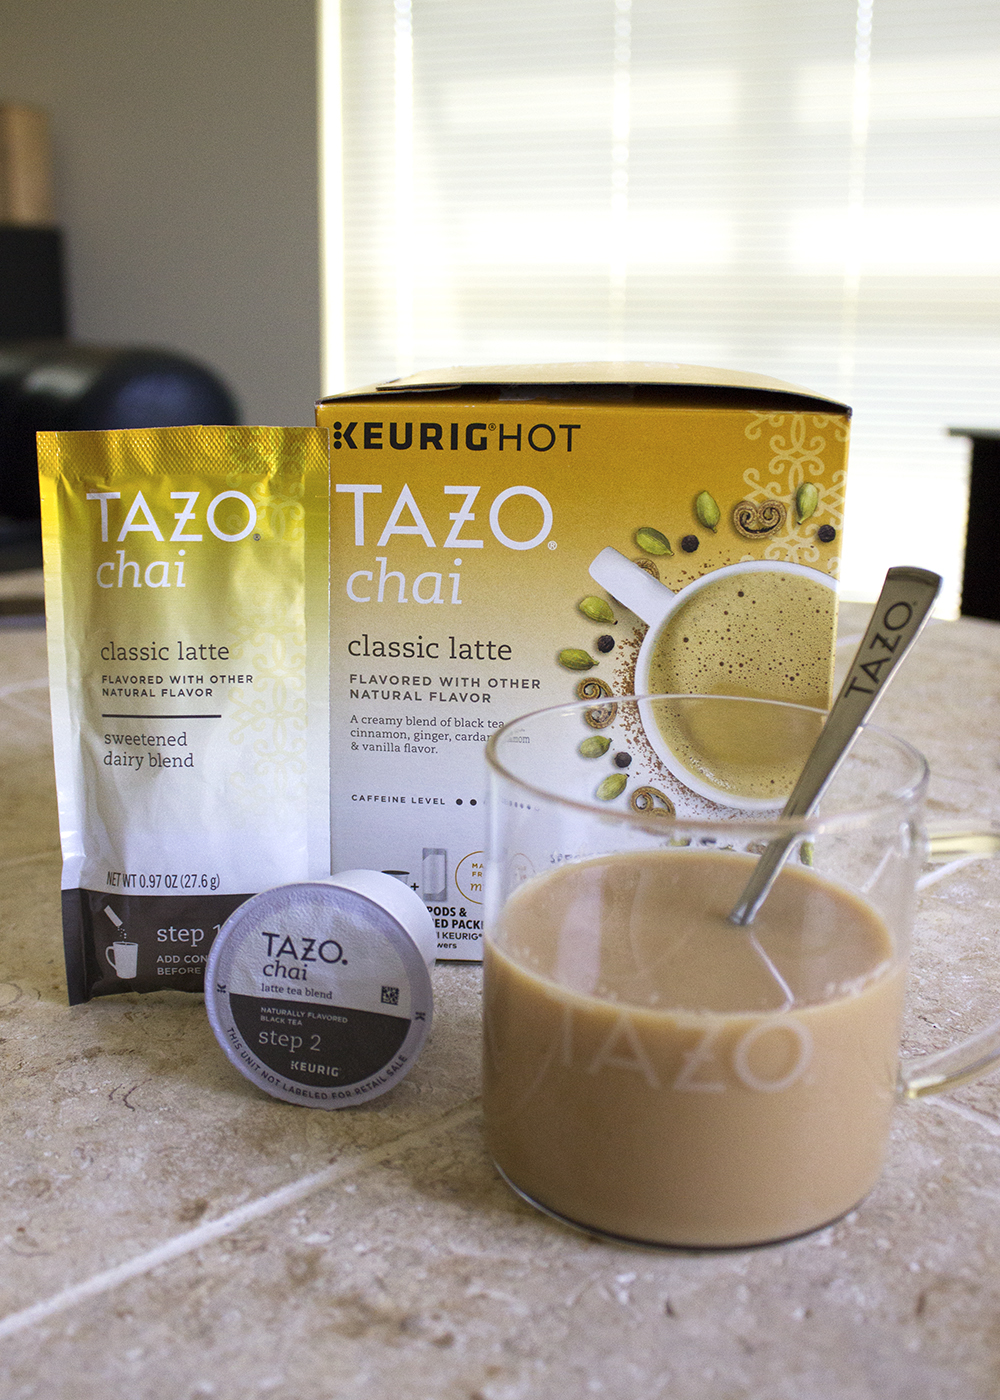 Spice Up Your Morning With Tazo 174 Chai Latte K Cup 174 Pods